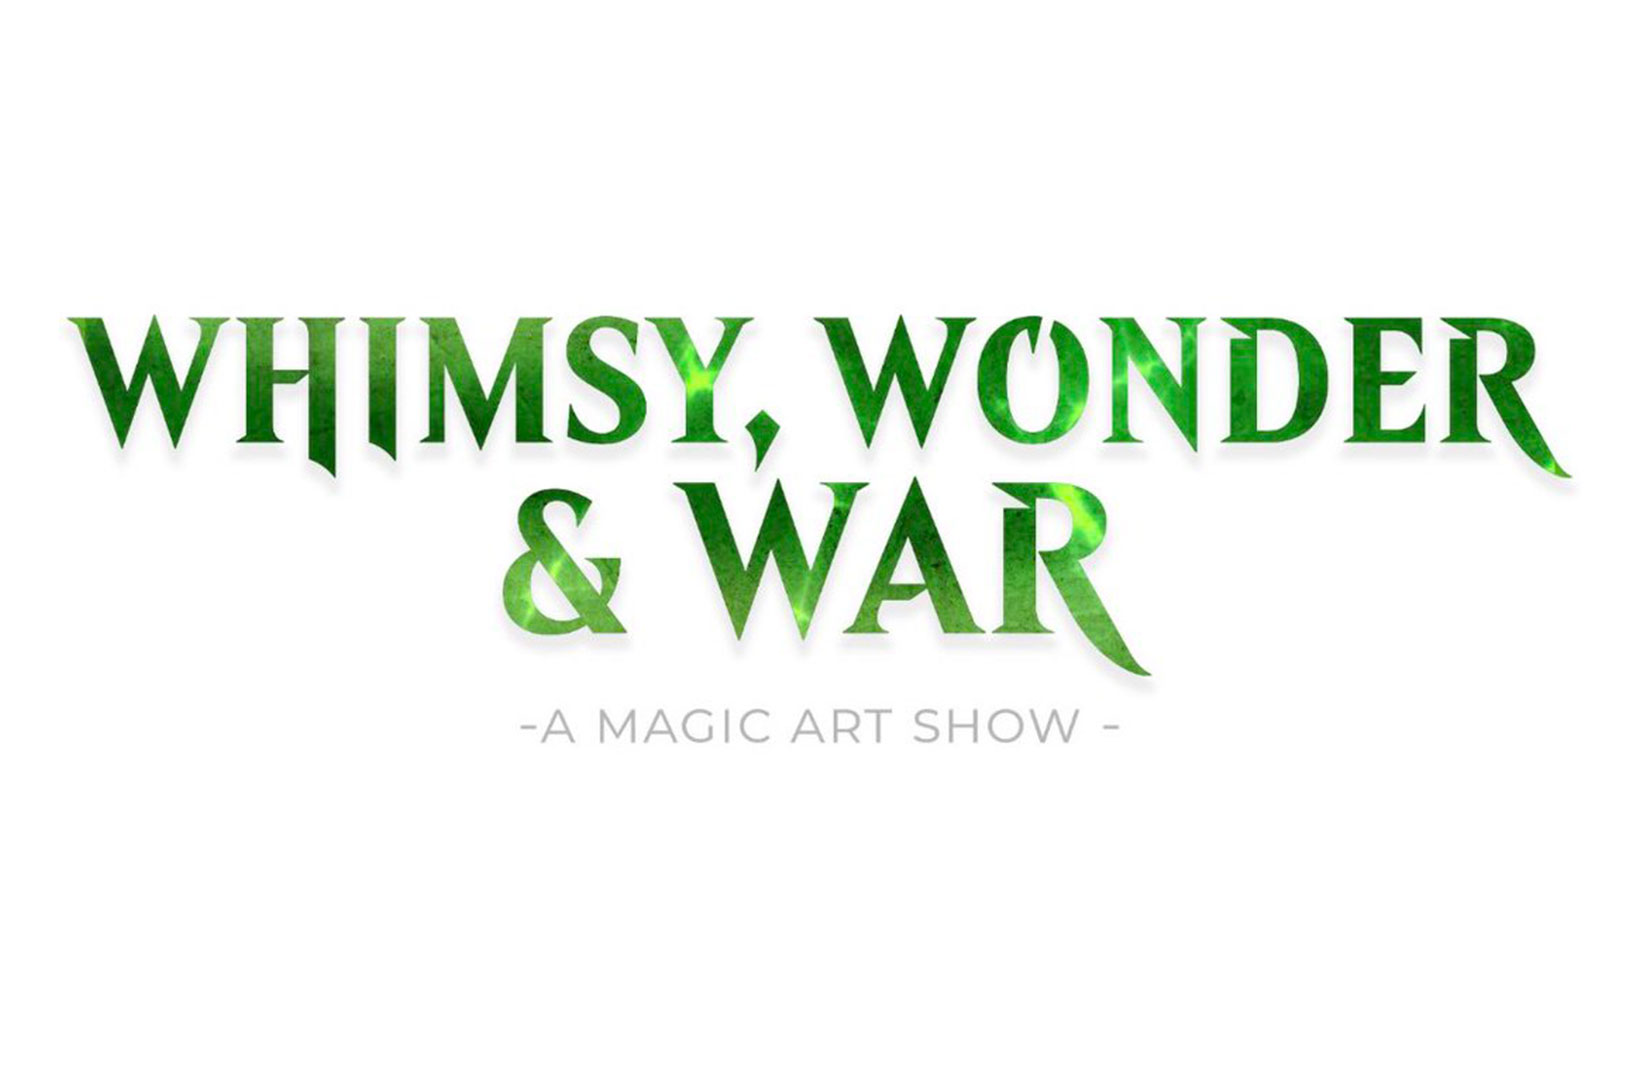 preview image for Whimsy, Wonder, & War Exhibition Preview - Hipsters of the Coast